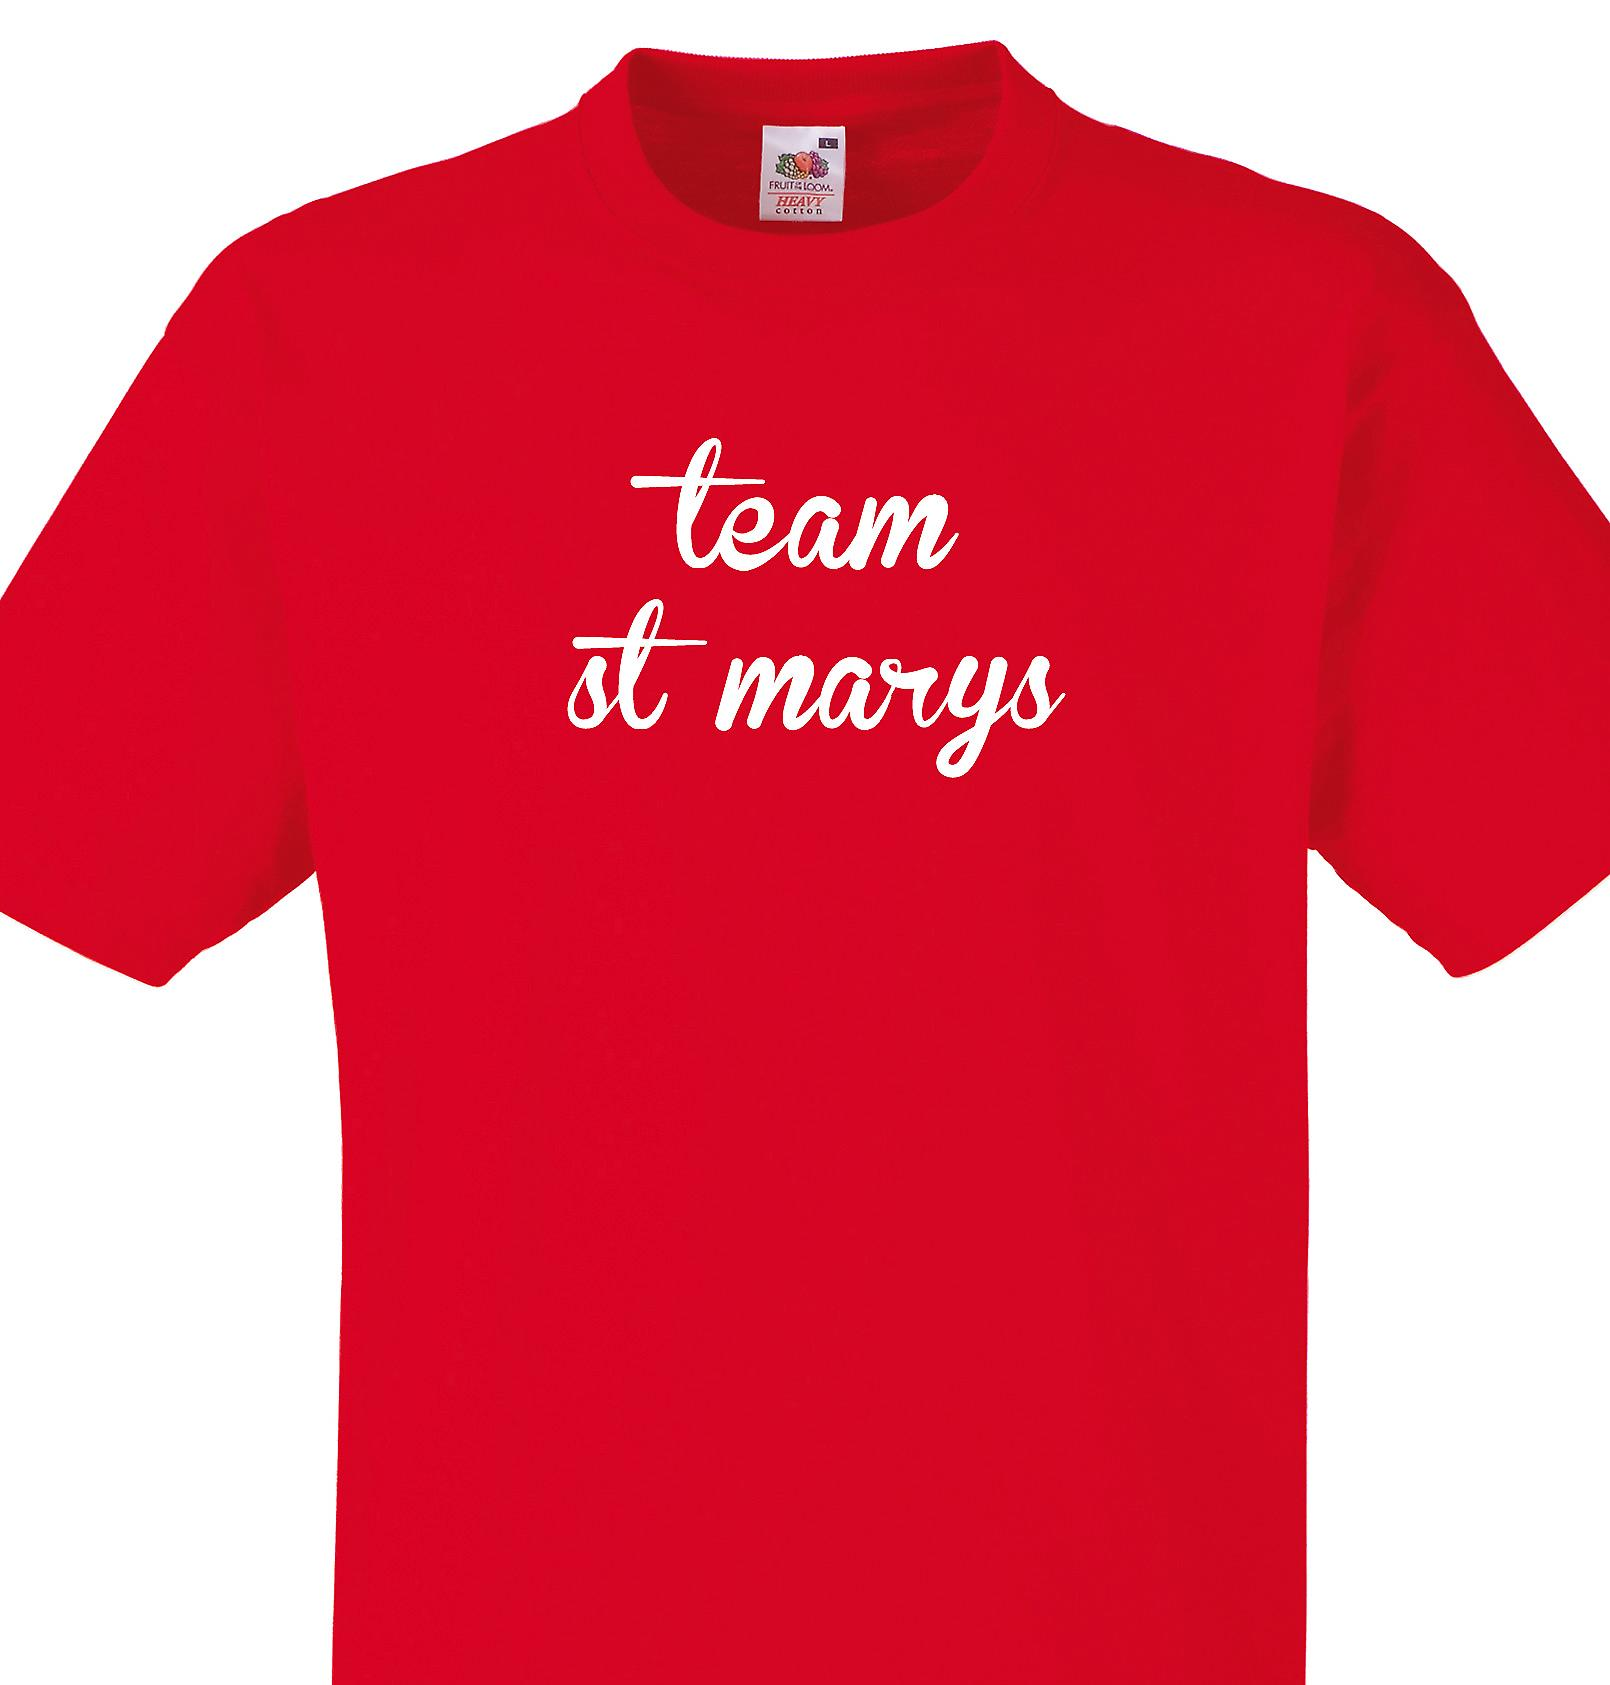 Team St marys Red T shirt